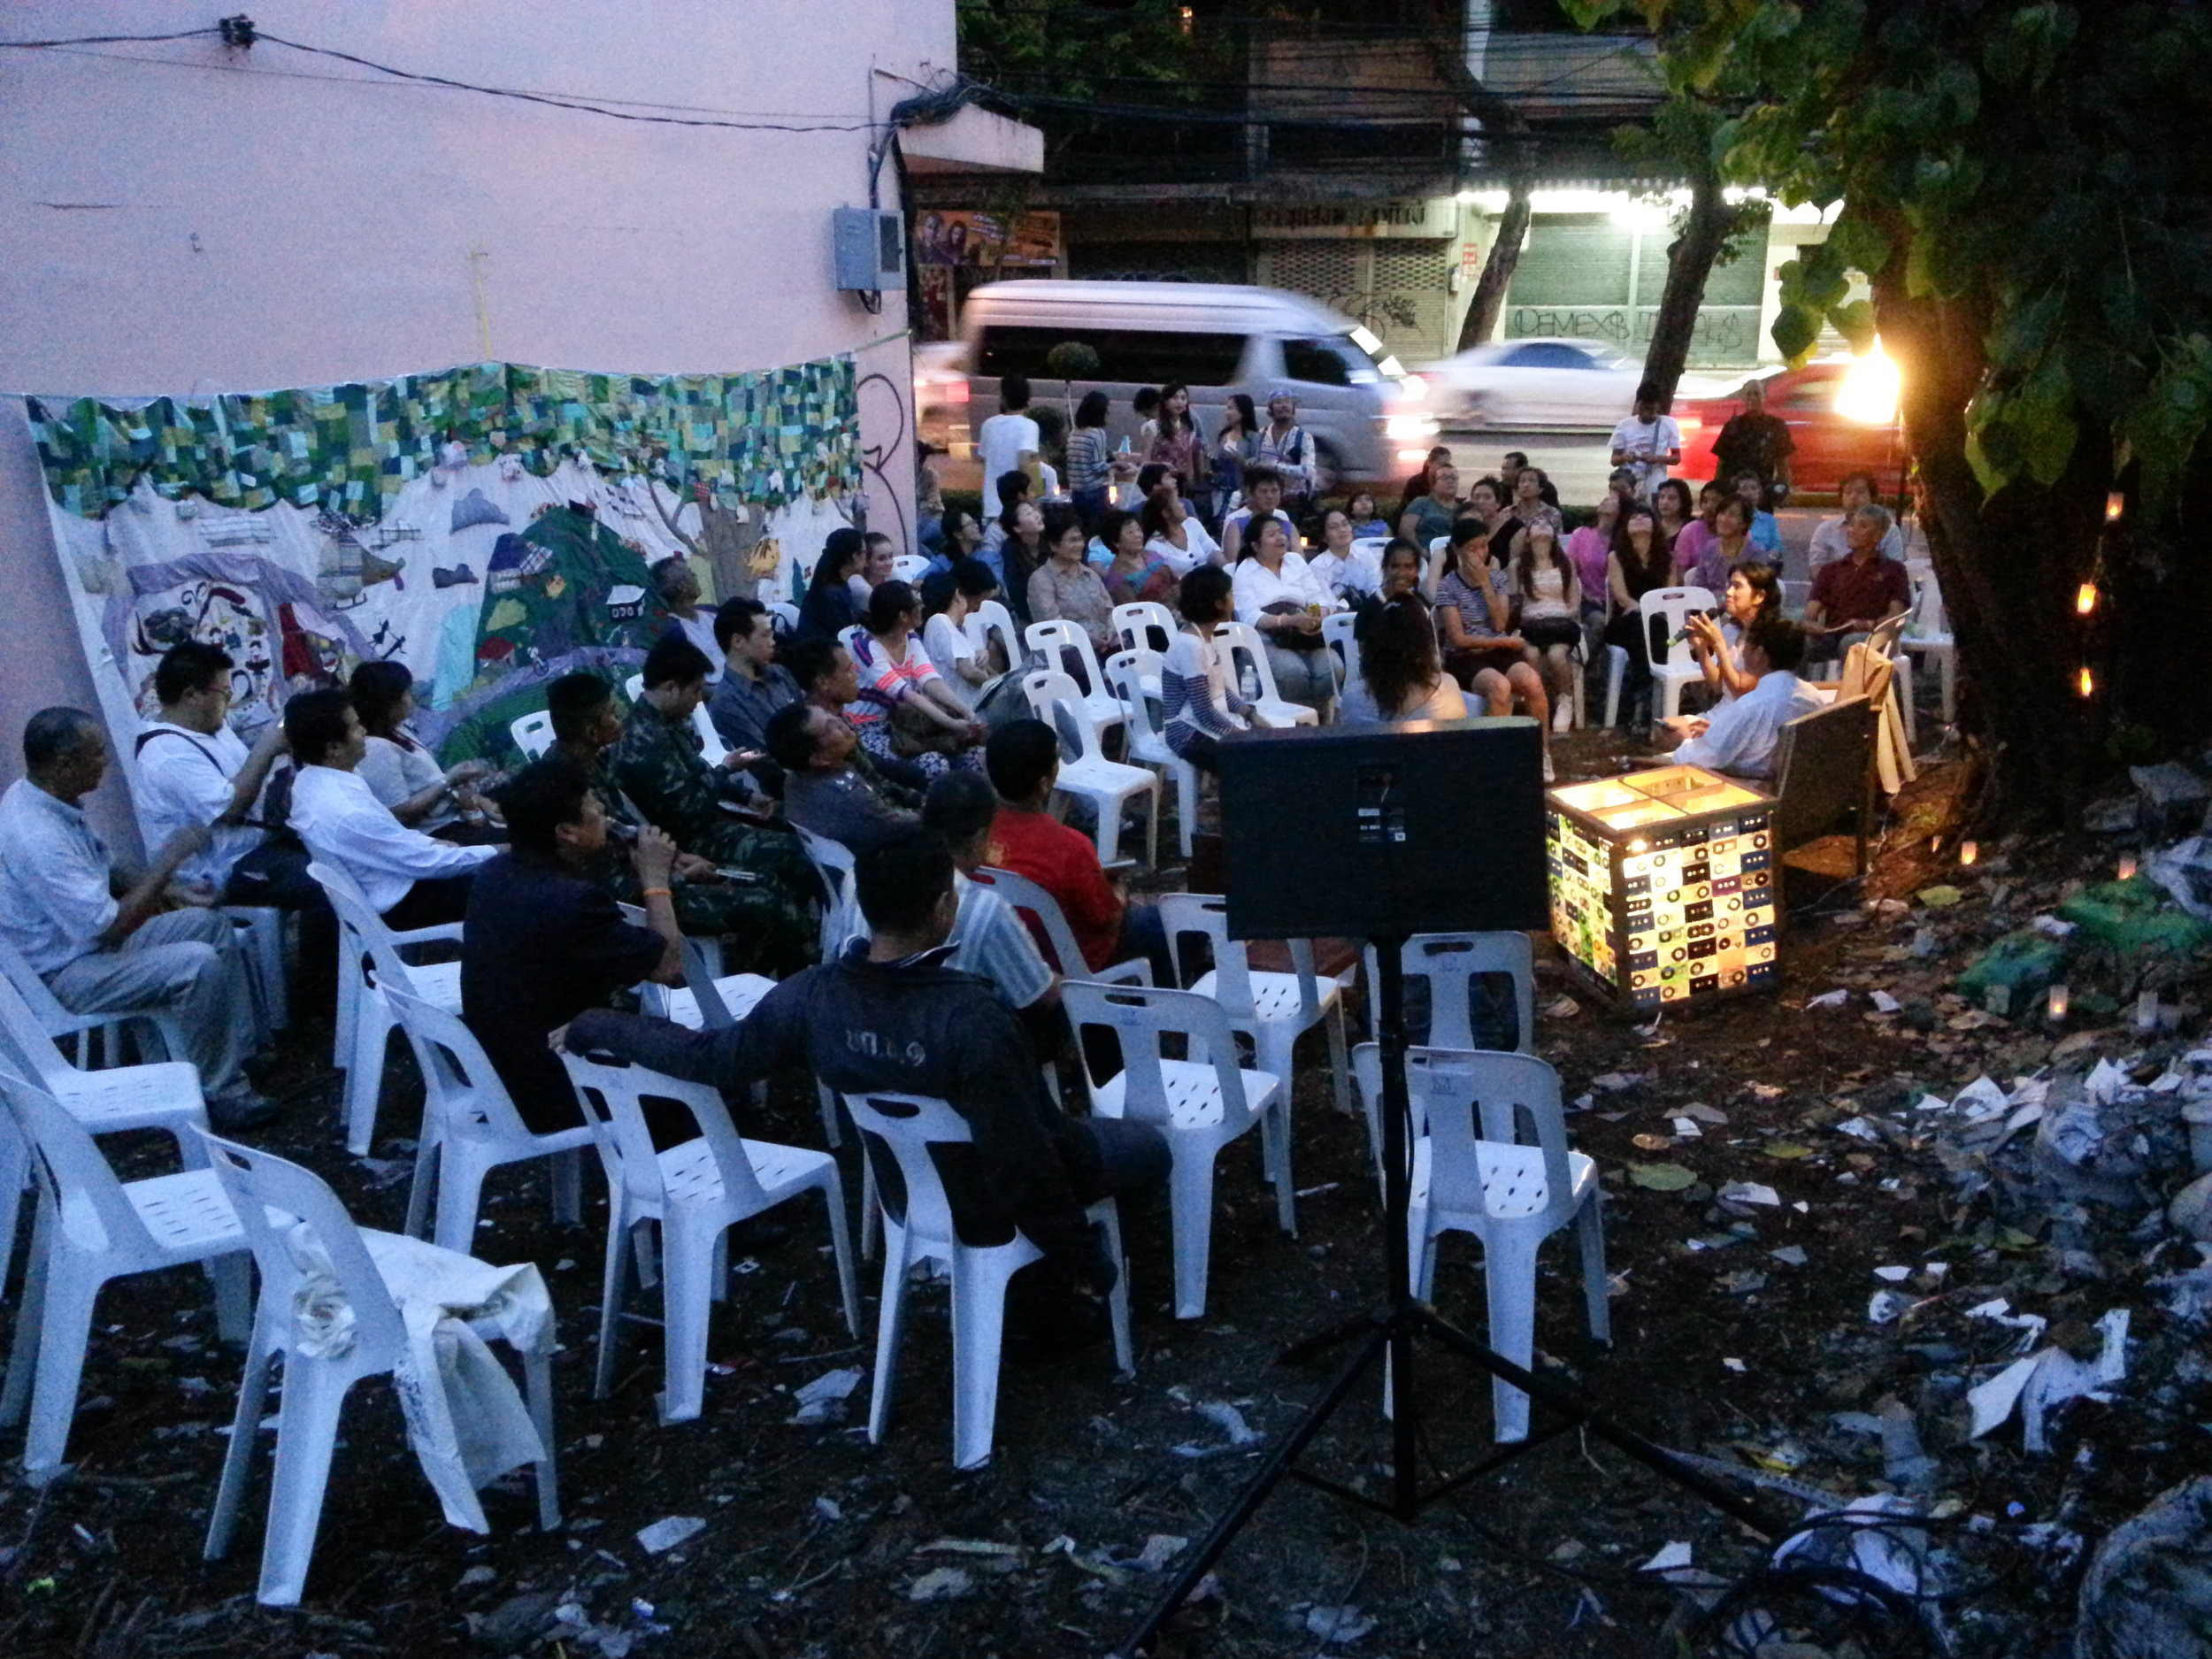 The first community event at the Dancing House in Nang Lerng, Bangkok